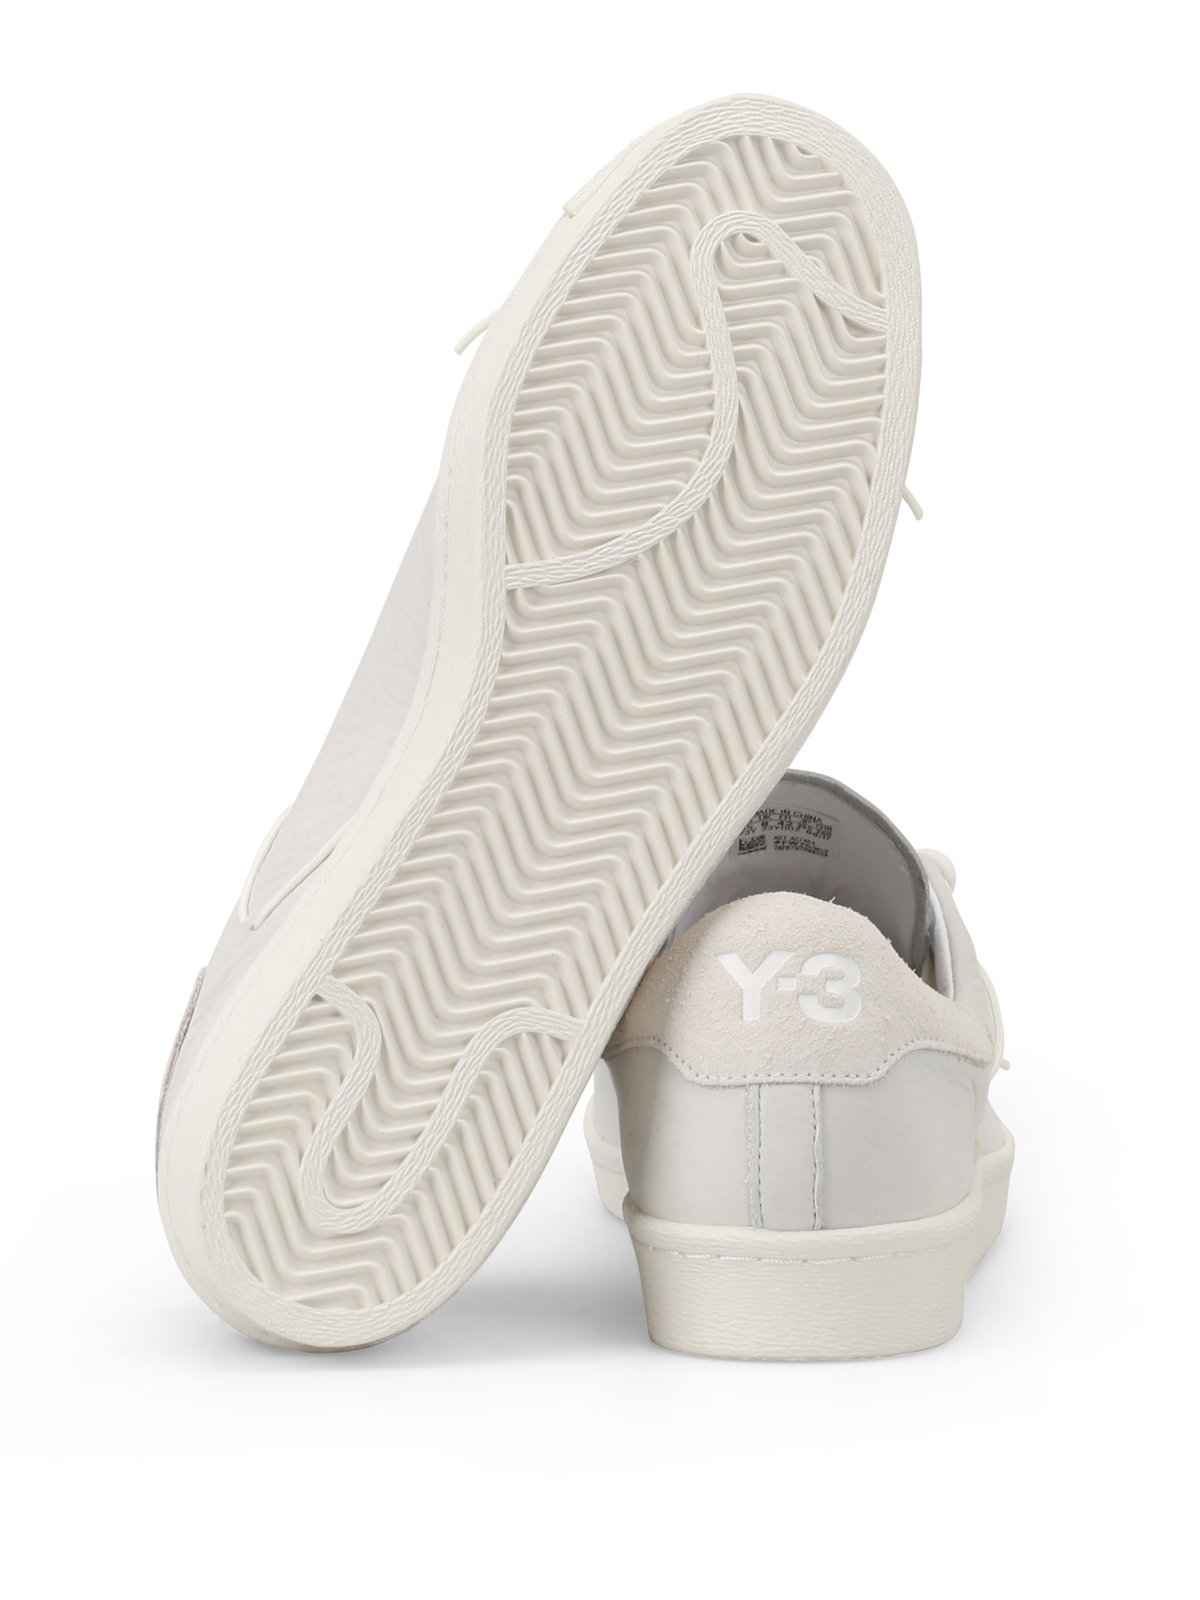 fdc72c26a Adidas Y-3 - Super Knot sneakers - trainers - AC7404